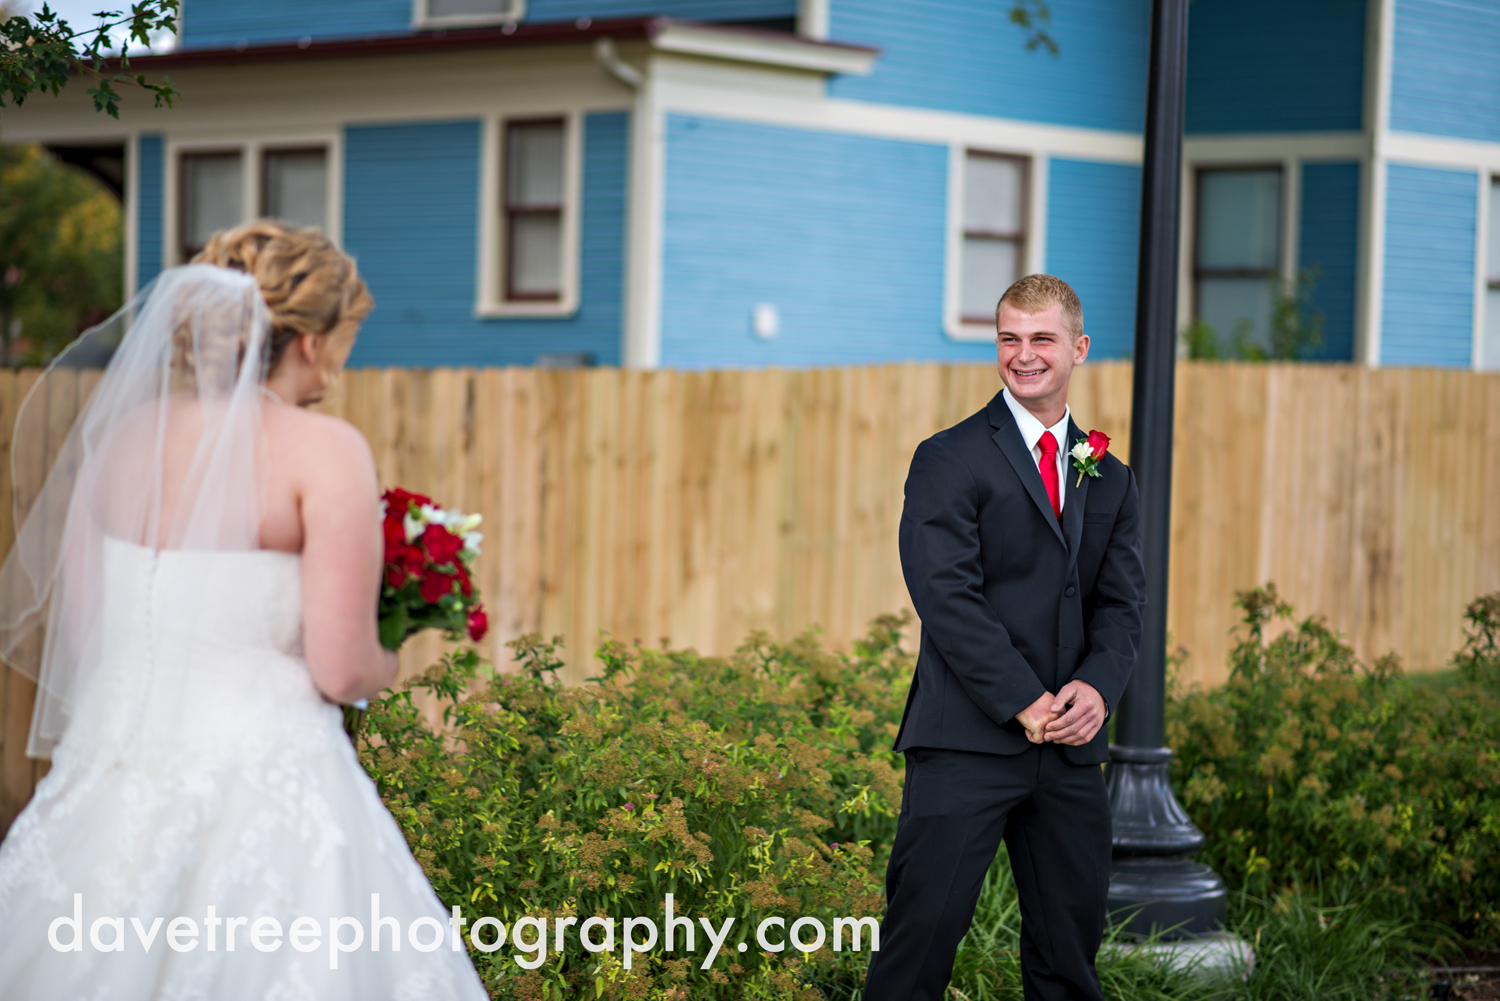 holland_wedding_photographer_70.jpg